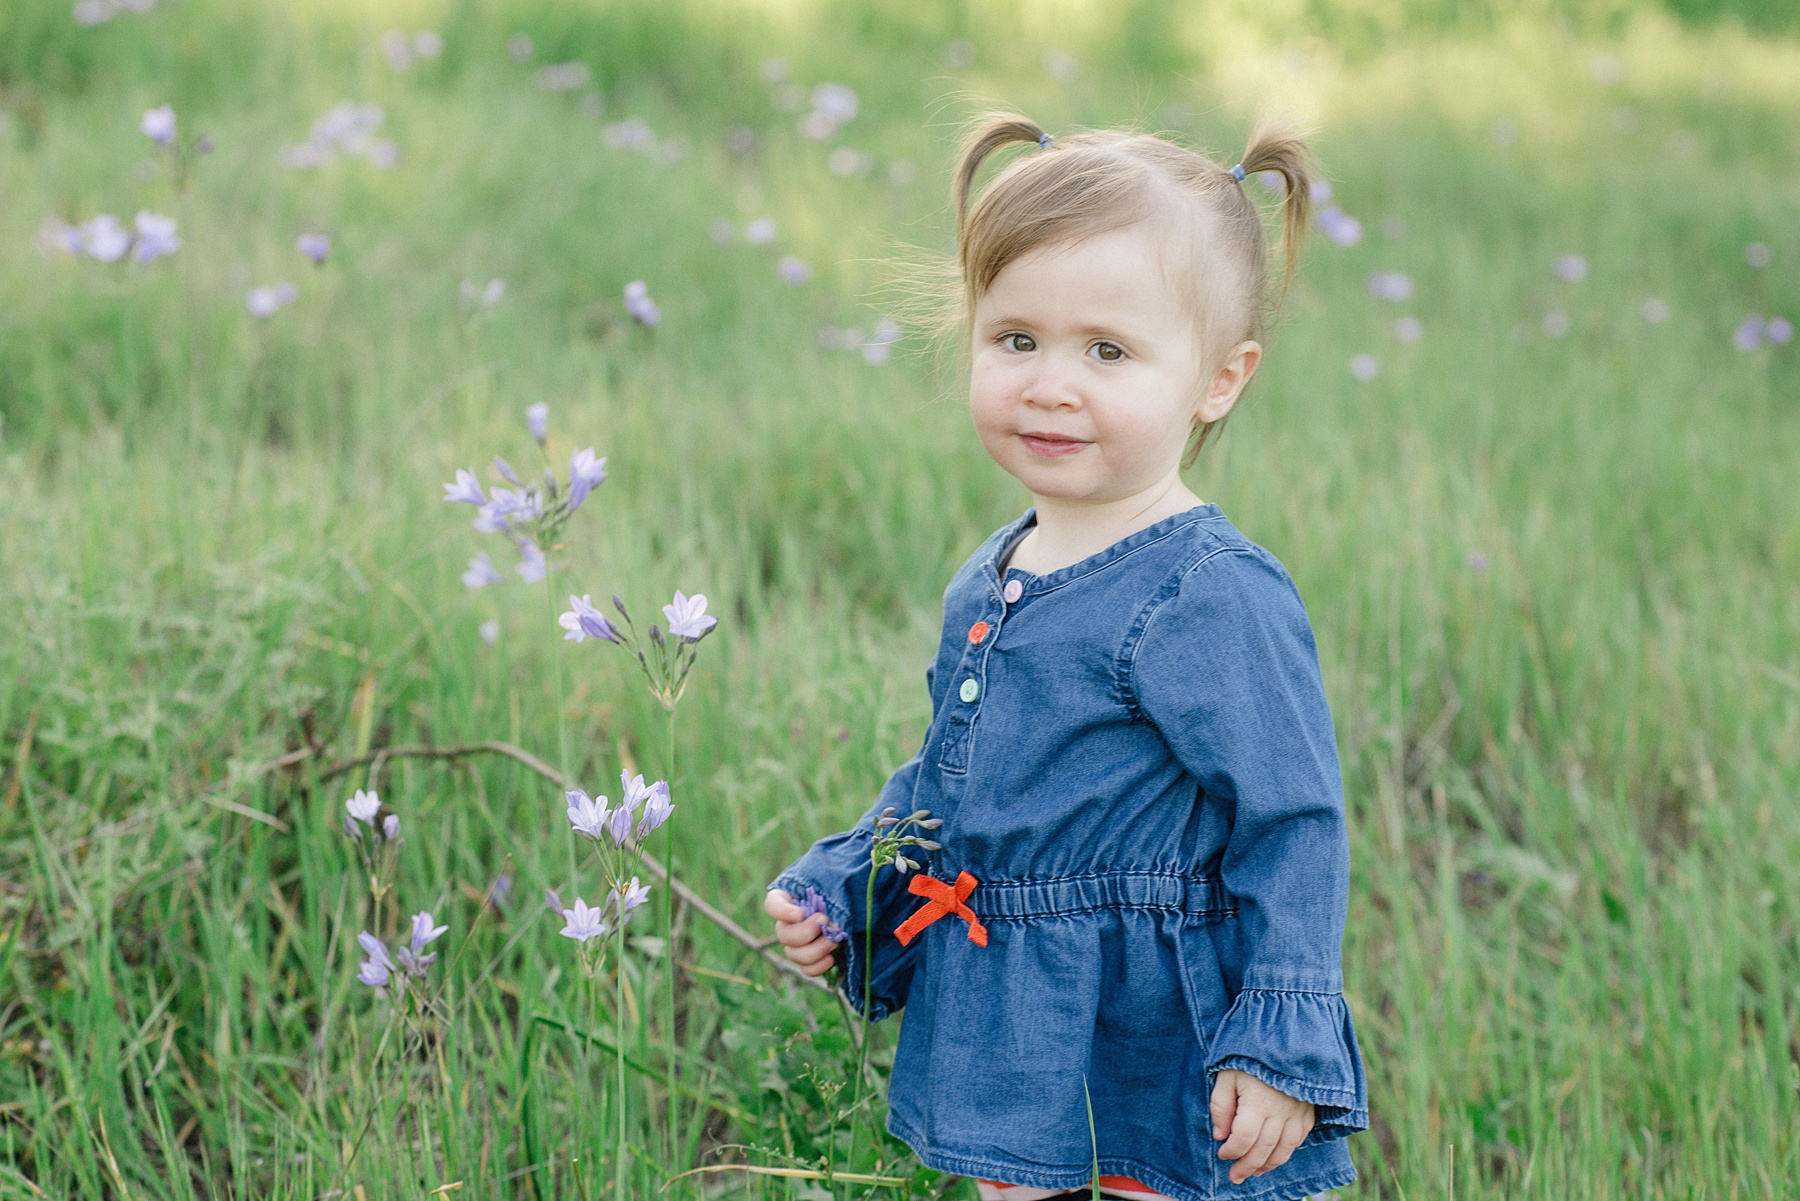 Roseville Toddler Photographer - Sarah Maren Photography